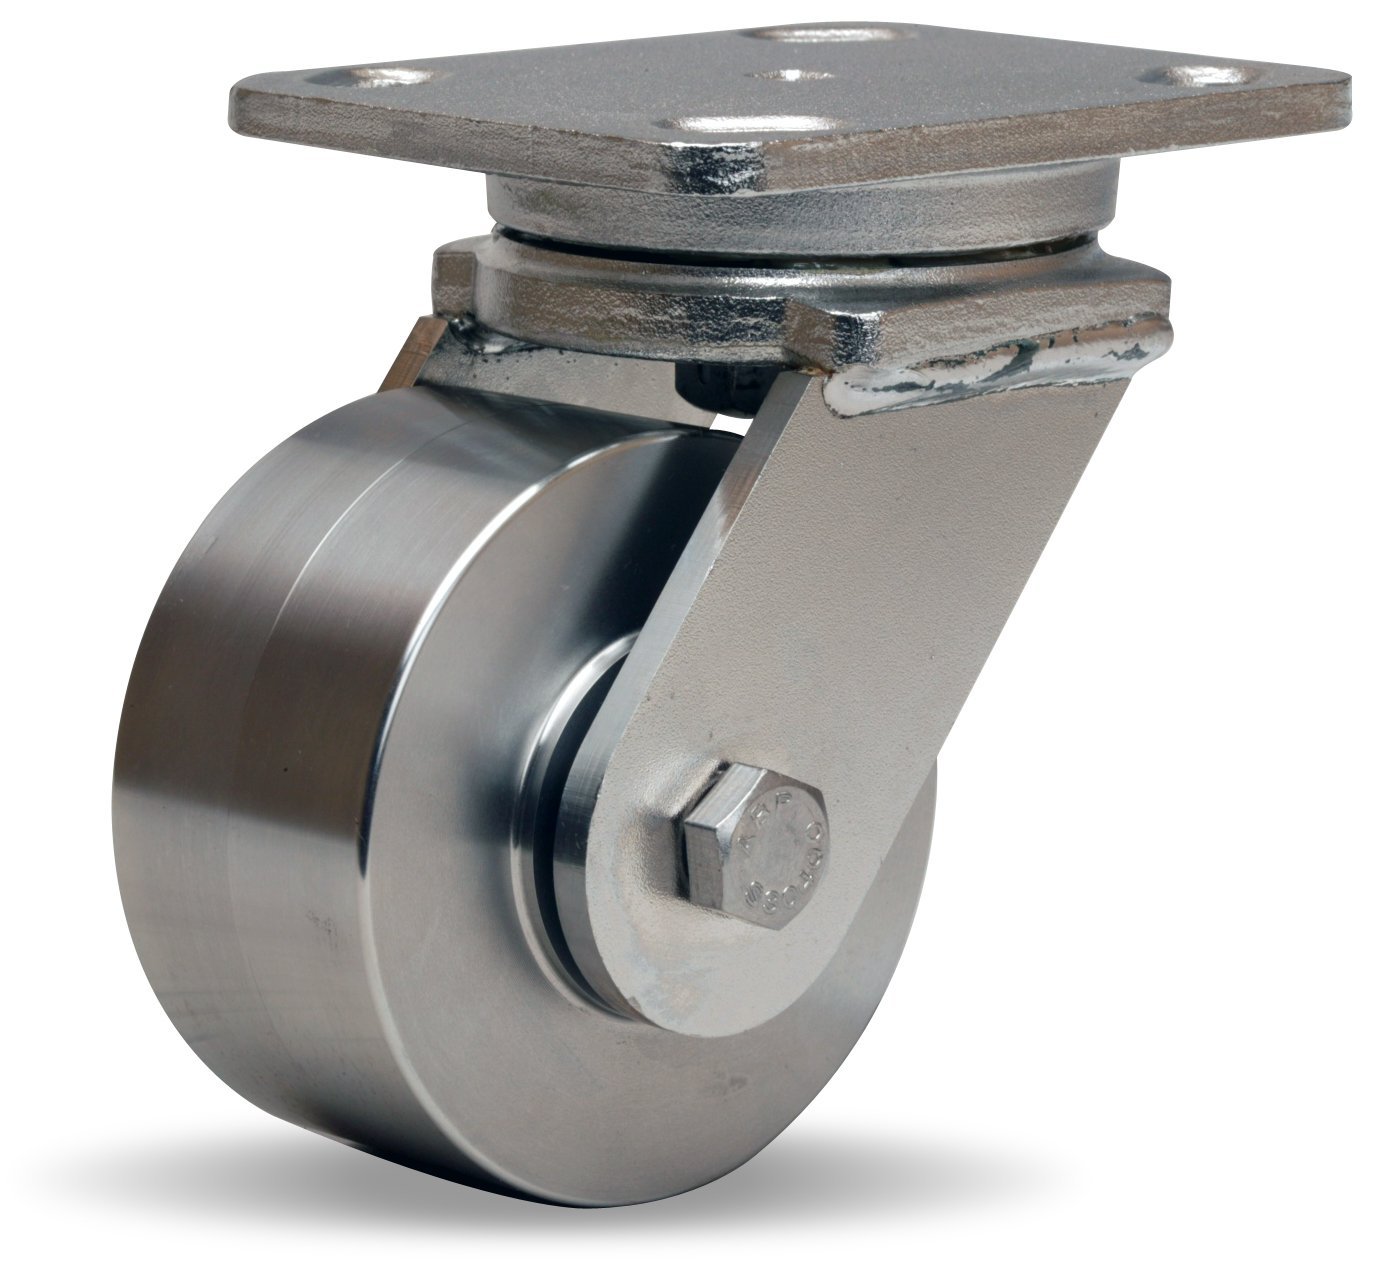 Hamilton Workhorse Plate Caster, Swivel, Stainless Steel Wheel, Stainless Steel Plate, Precision Ball Bearing, 850 lbs Capacity, 4'' Wheel Dia, 2'' Wheel Width, 5-5/8'' Mount Height, 5'' Plate Length, 4'' Plate Width